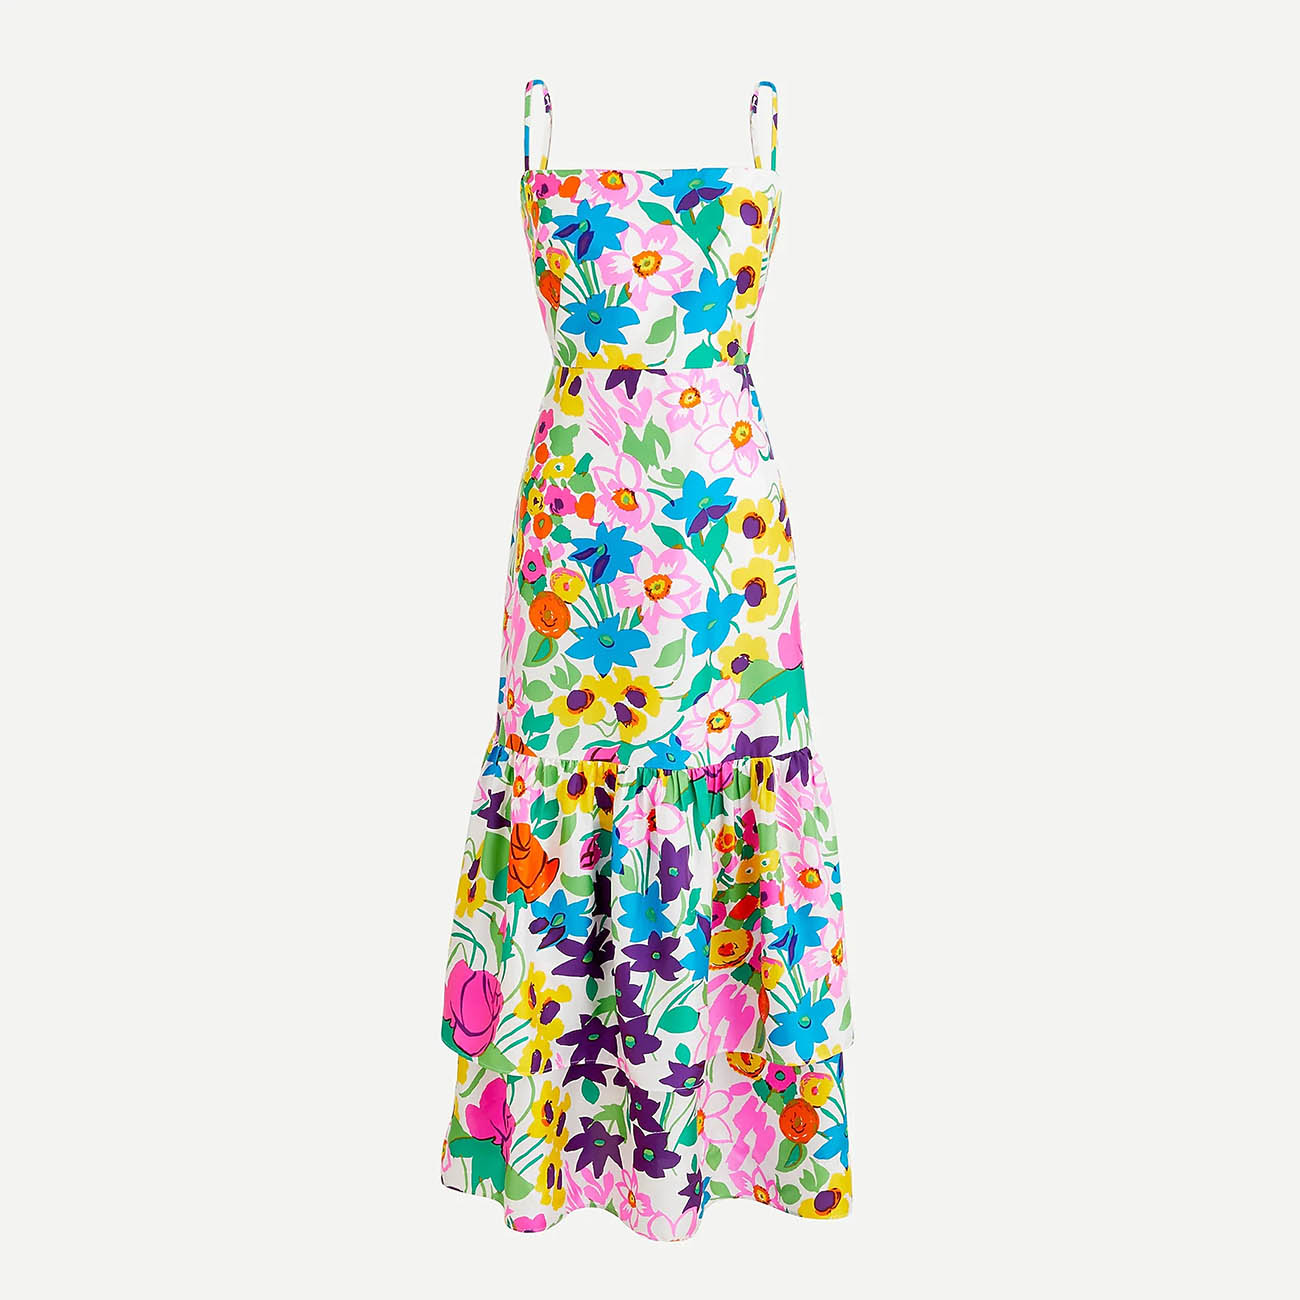 bright floral dress for a spring wedding